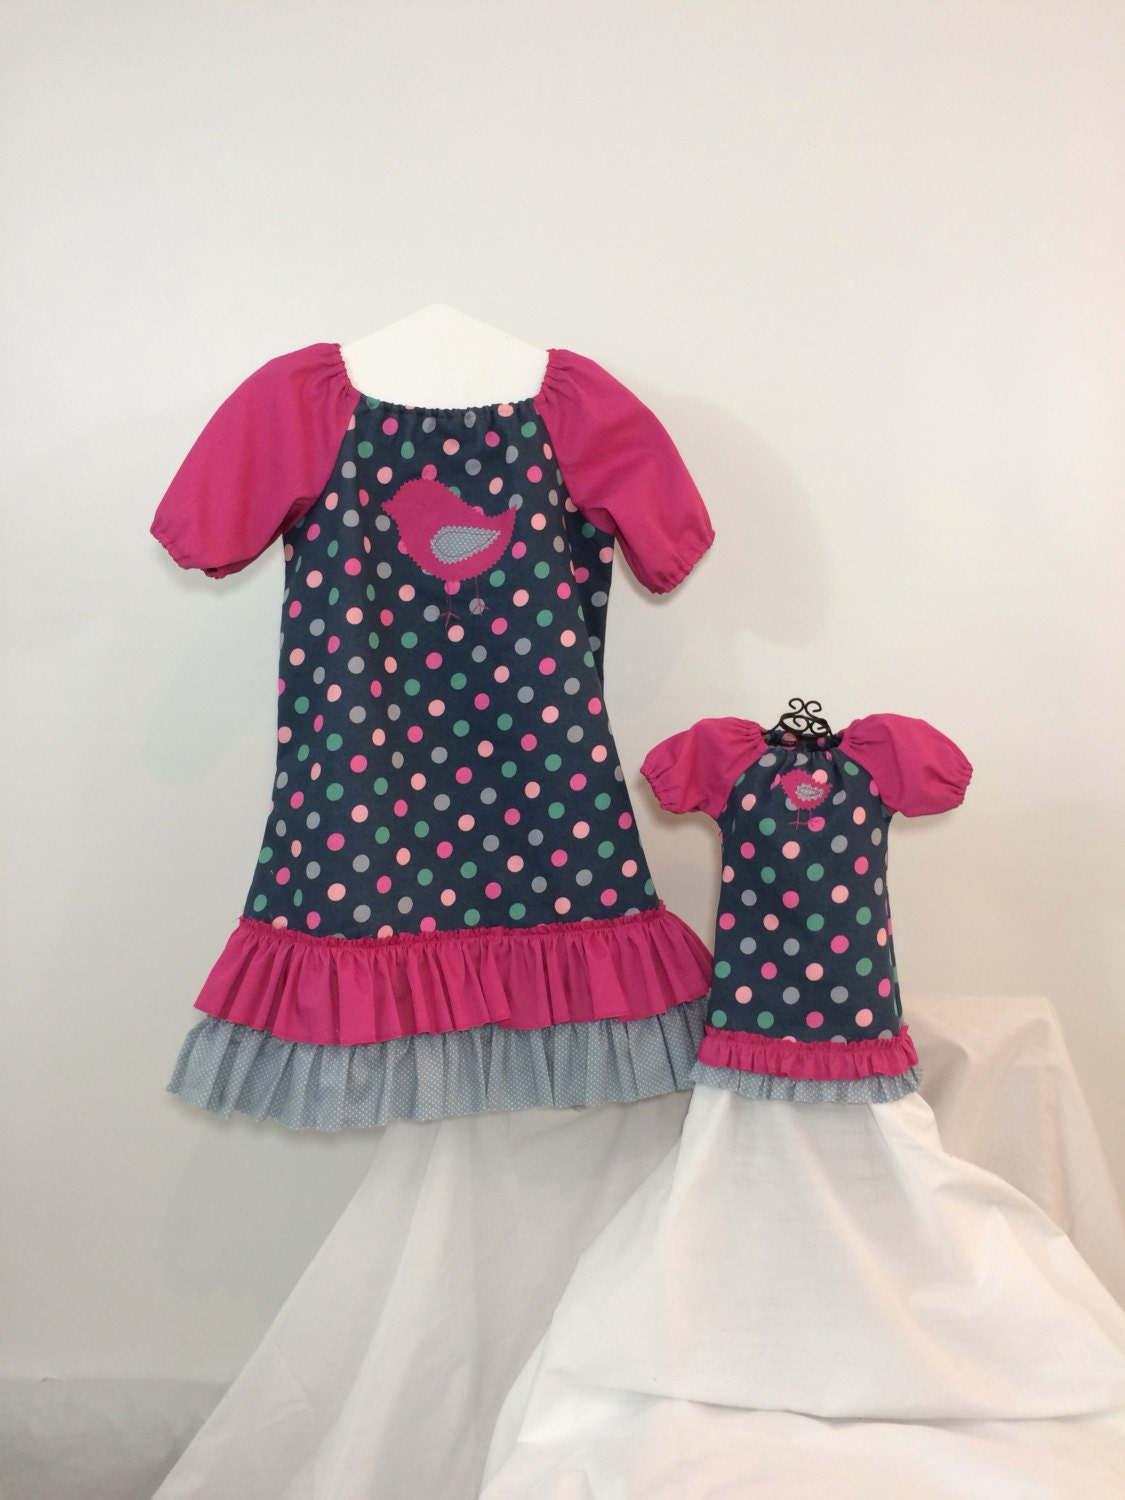 Girls 'Friday's child is loving and giving,' as are most children. Whatever day your little one was born on, we're sure she'll look adorably cute and lady-like in our whimsical, timeless girls dresses—favorite hand-me downs from one sibling to another, one generation to another.